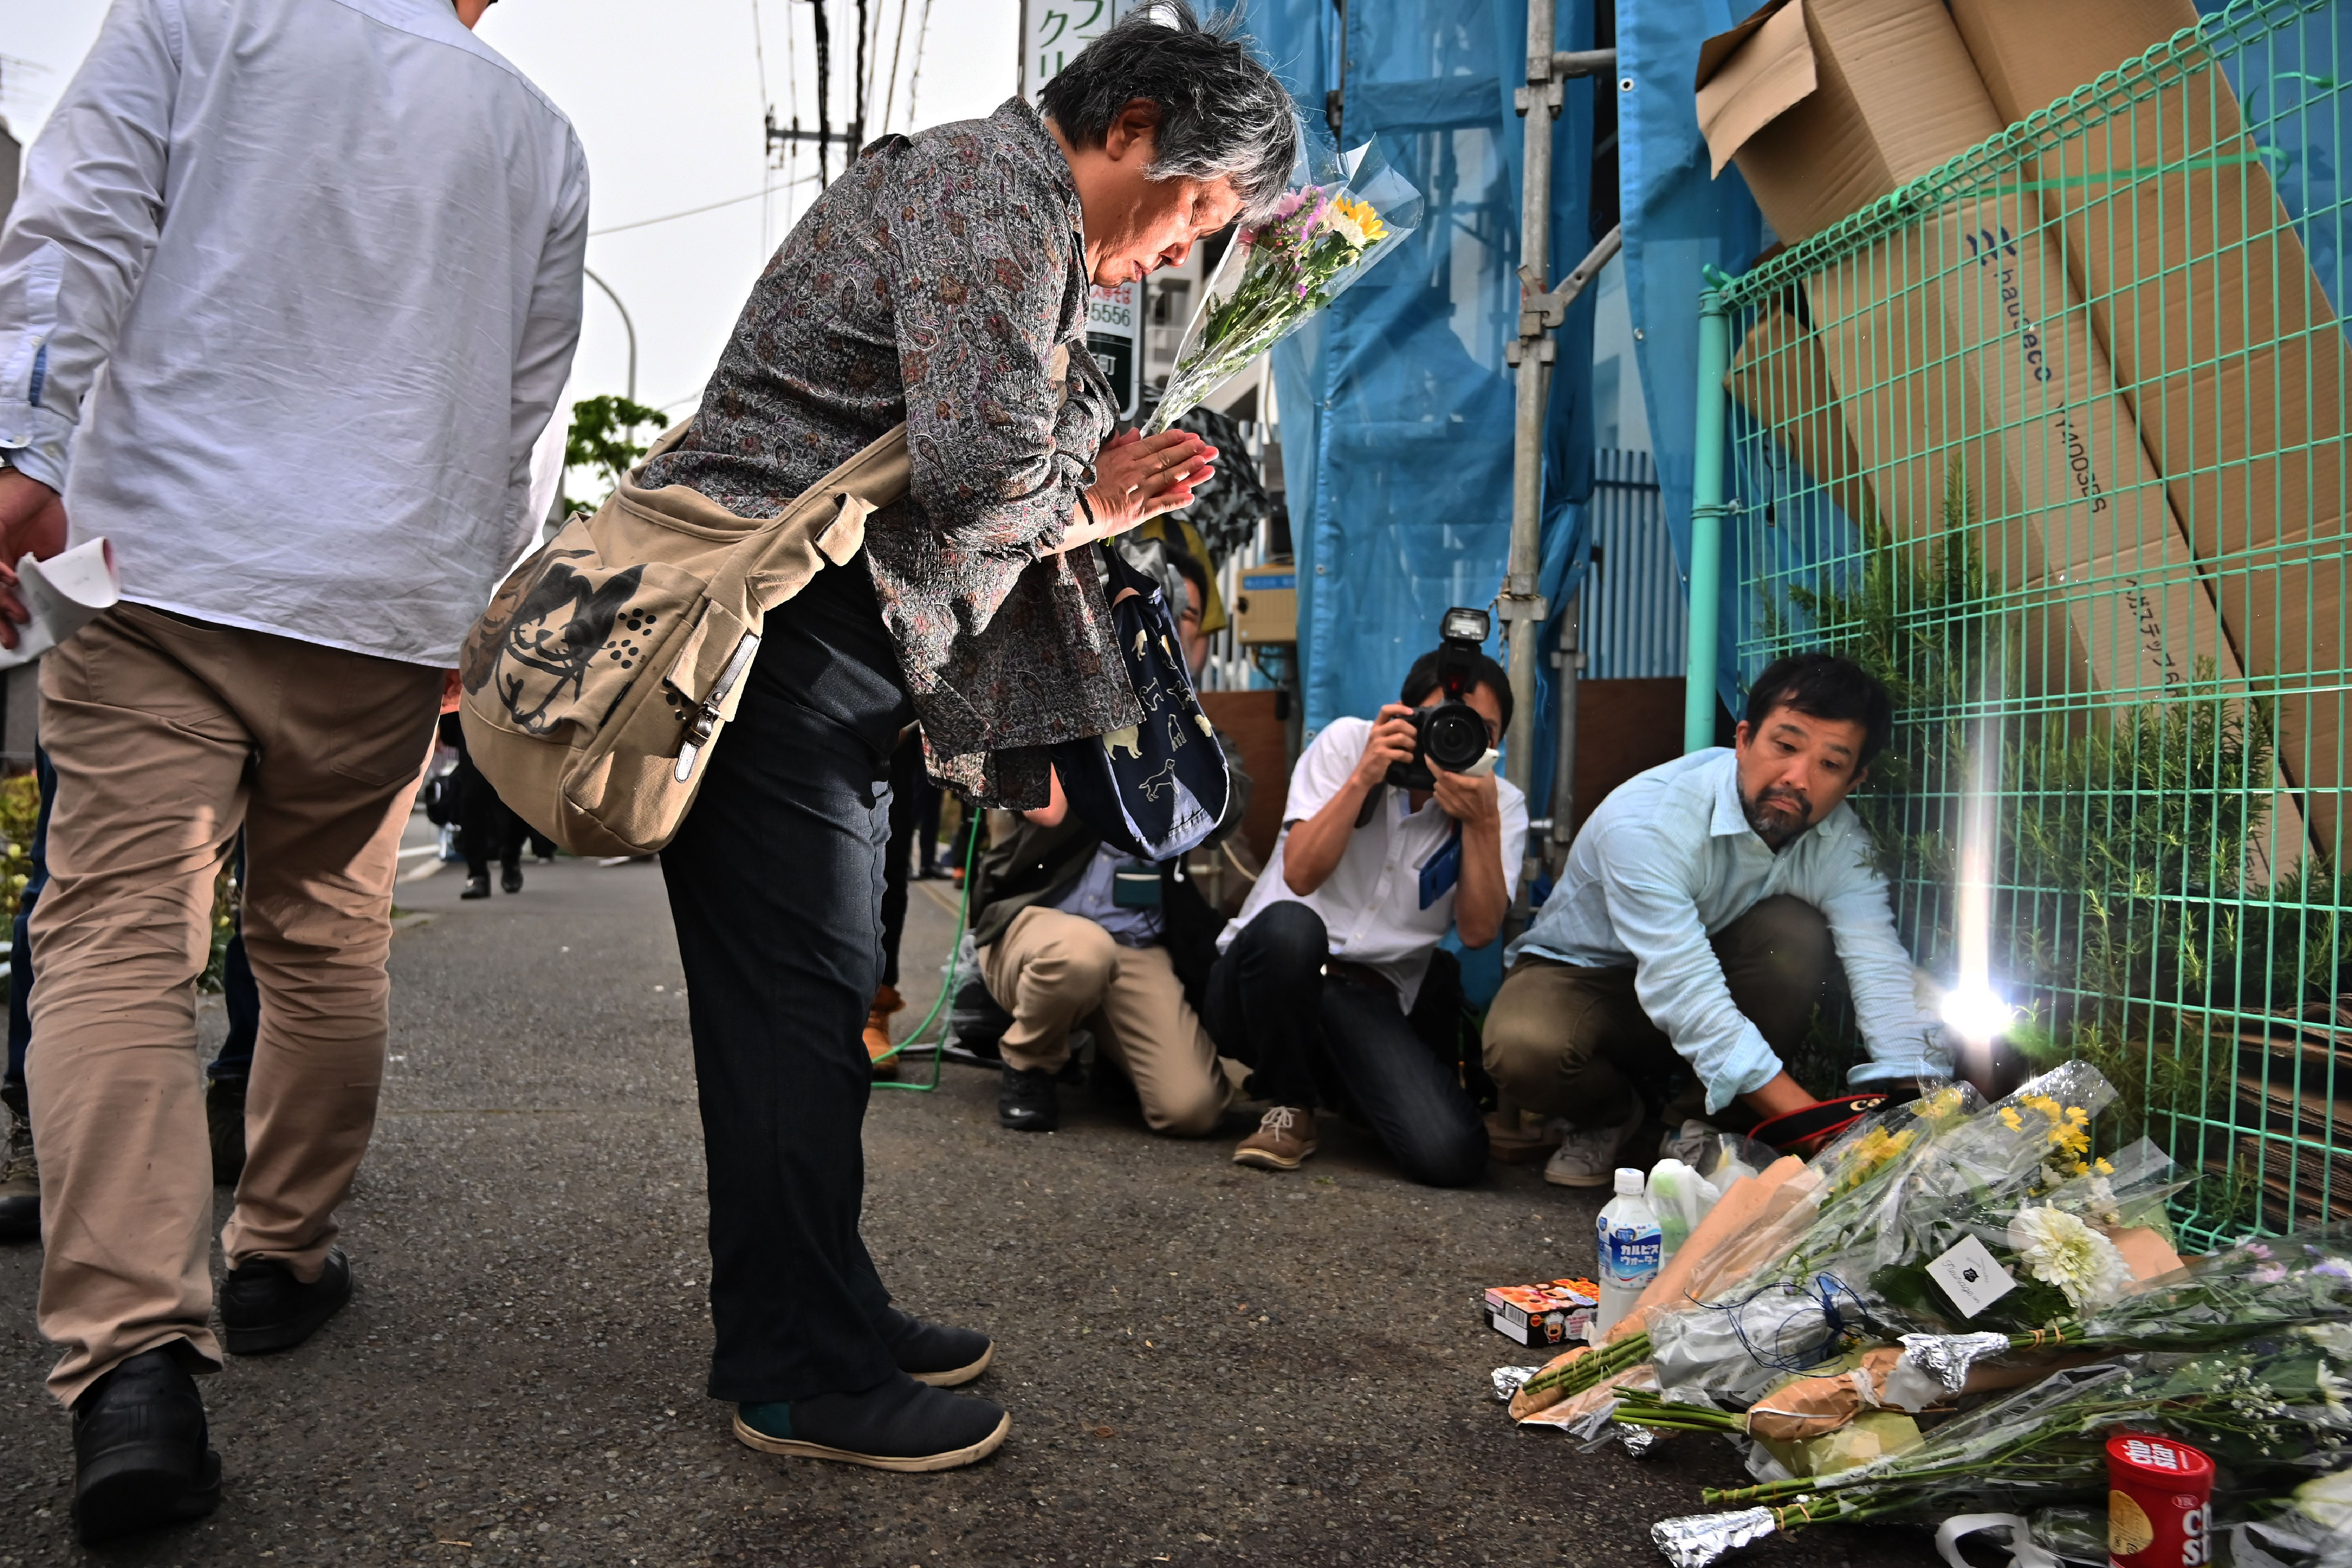 A woman pays her respects next to flower tributes at the crime scene where a man stabbed 19 people, including children, in Kawasaki on May 28, 2019. - A knife-wielding attacker killed a 12-year-old schoolgirl and a man before stabbing himself to death in a rampage outside Tokyo that also injured more than a dozen, including several children. (Photo by CHARLY TRIBALLEAU/AFP/Getty Images)